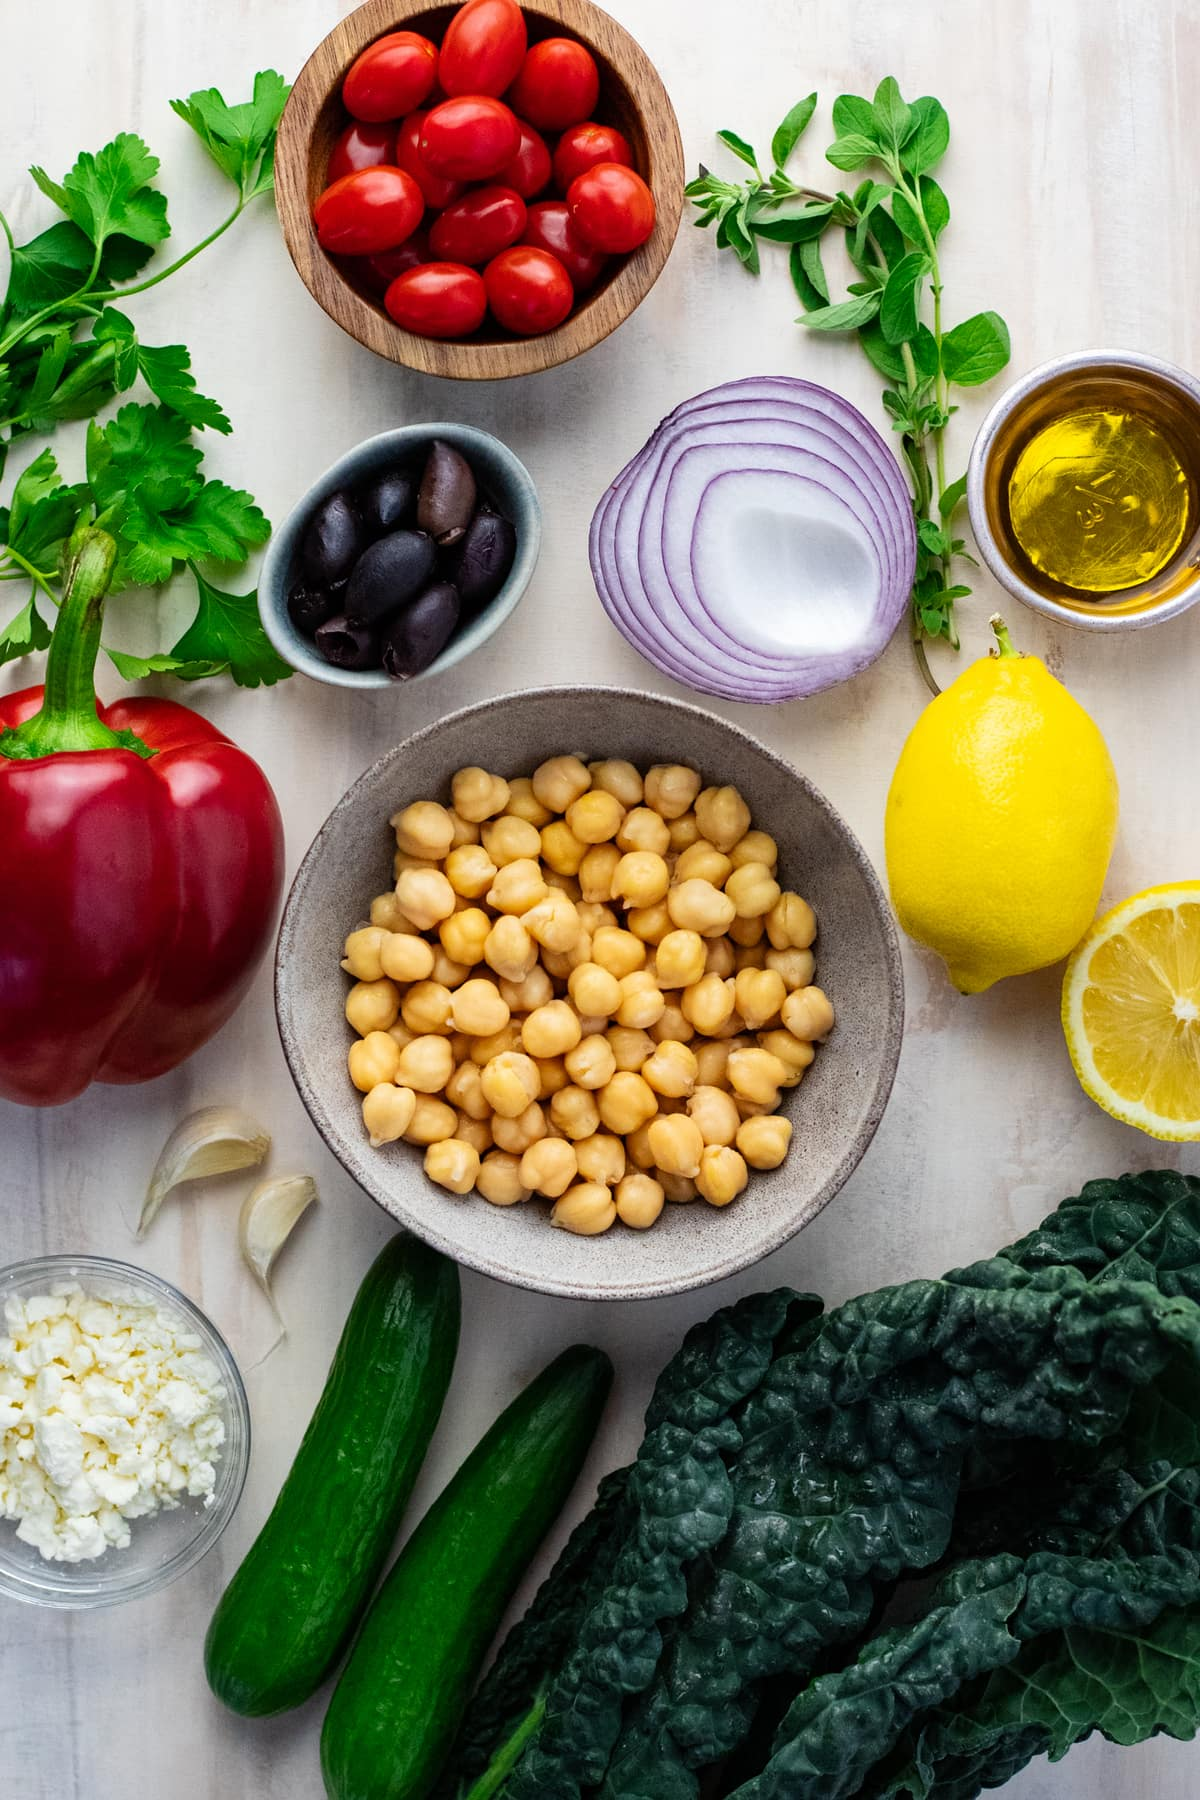 Ingredients for chickpea salad arranged on a light background.